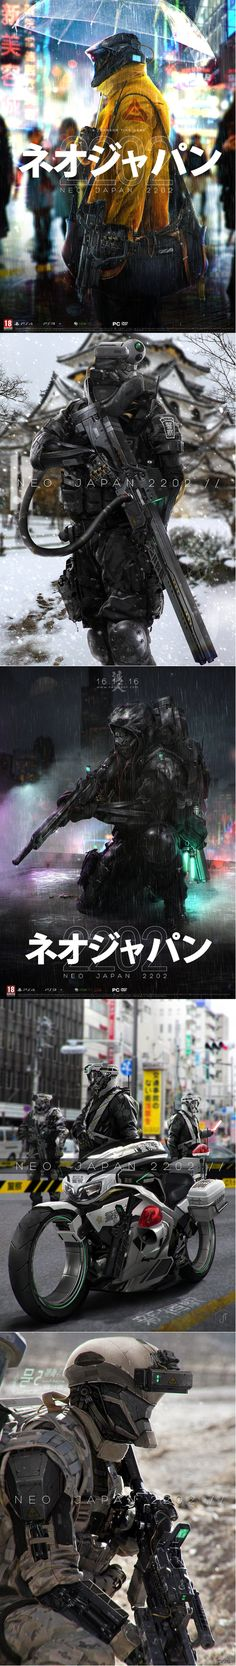 Neo Japan 2202 By Johnsonting Deviant Art Httpjohnsontingdeviantartcomartneo Japan 2202 Kikai Yohei Cyberpunk Character, Cyberpunk Art, Character Concept, Character Art, Concept Art, Neo Japan 2202, Science Fiction, Mekka, Future Soldier